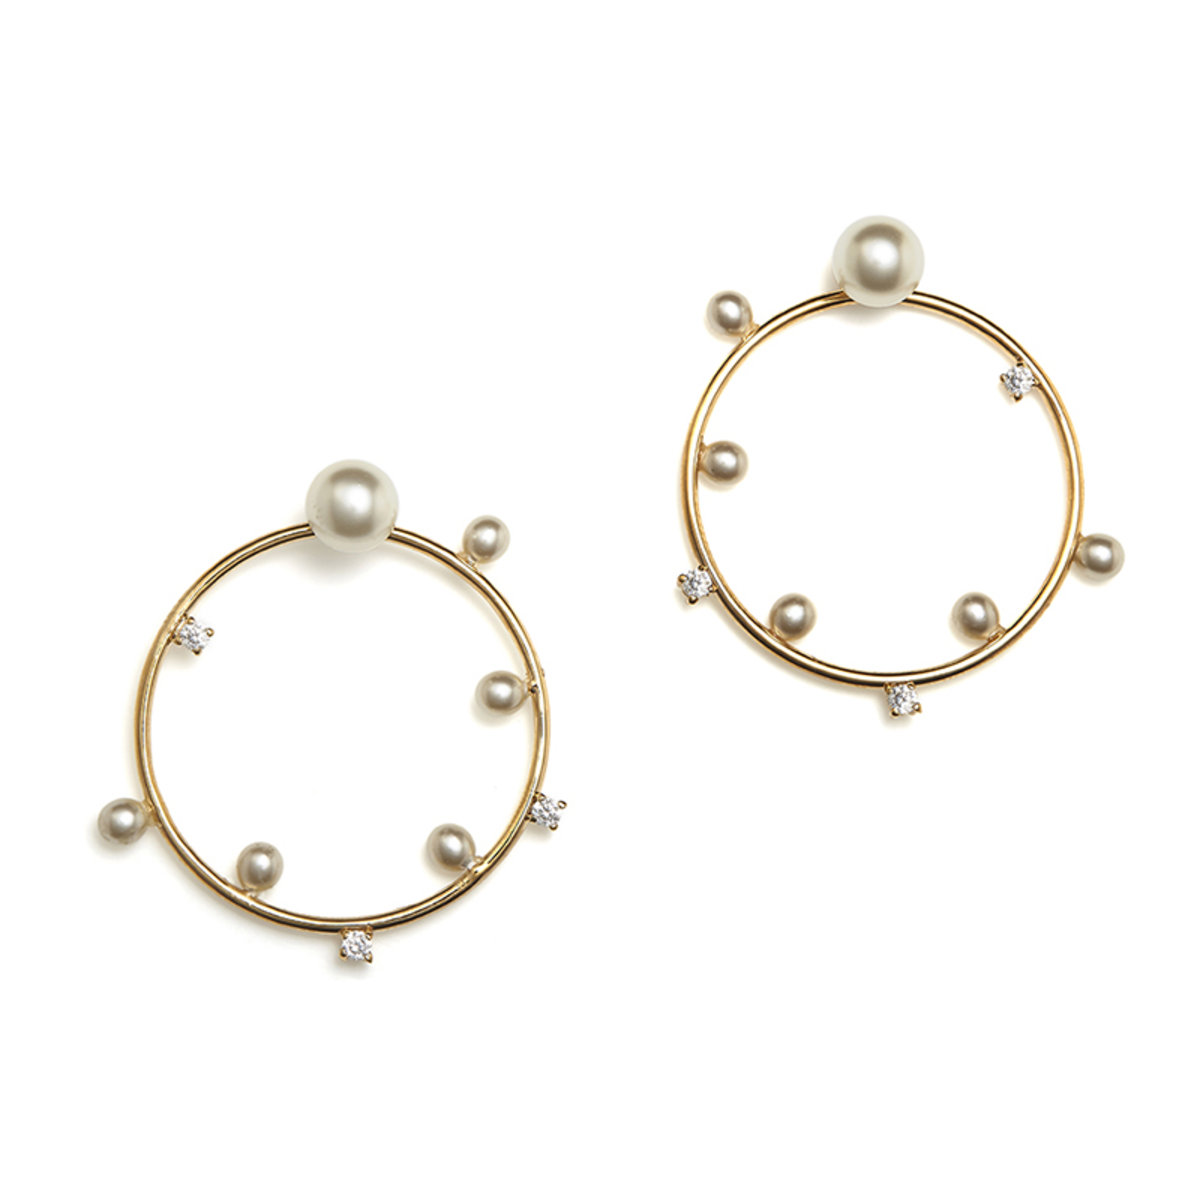 Vivace : gold plating,crystal, pearl and CZ stone pierced earrings